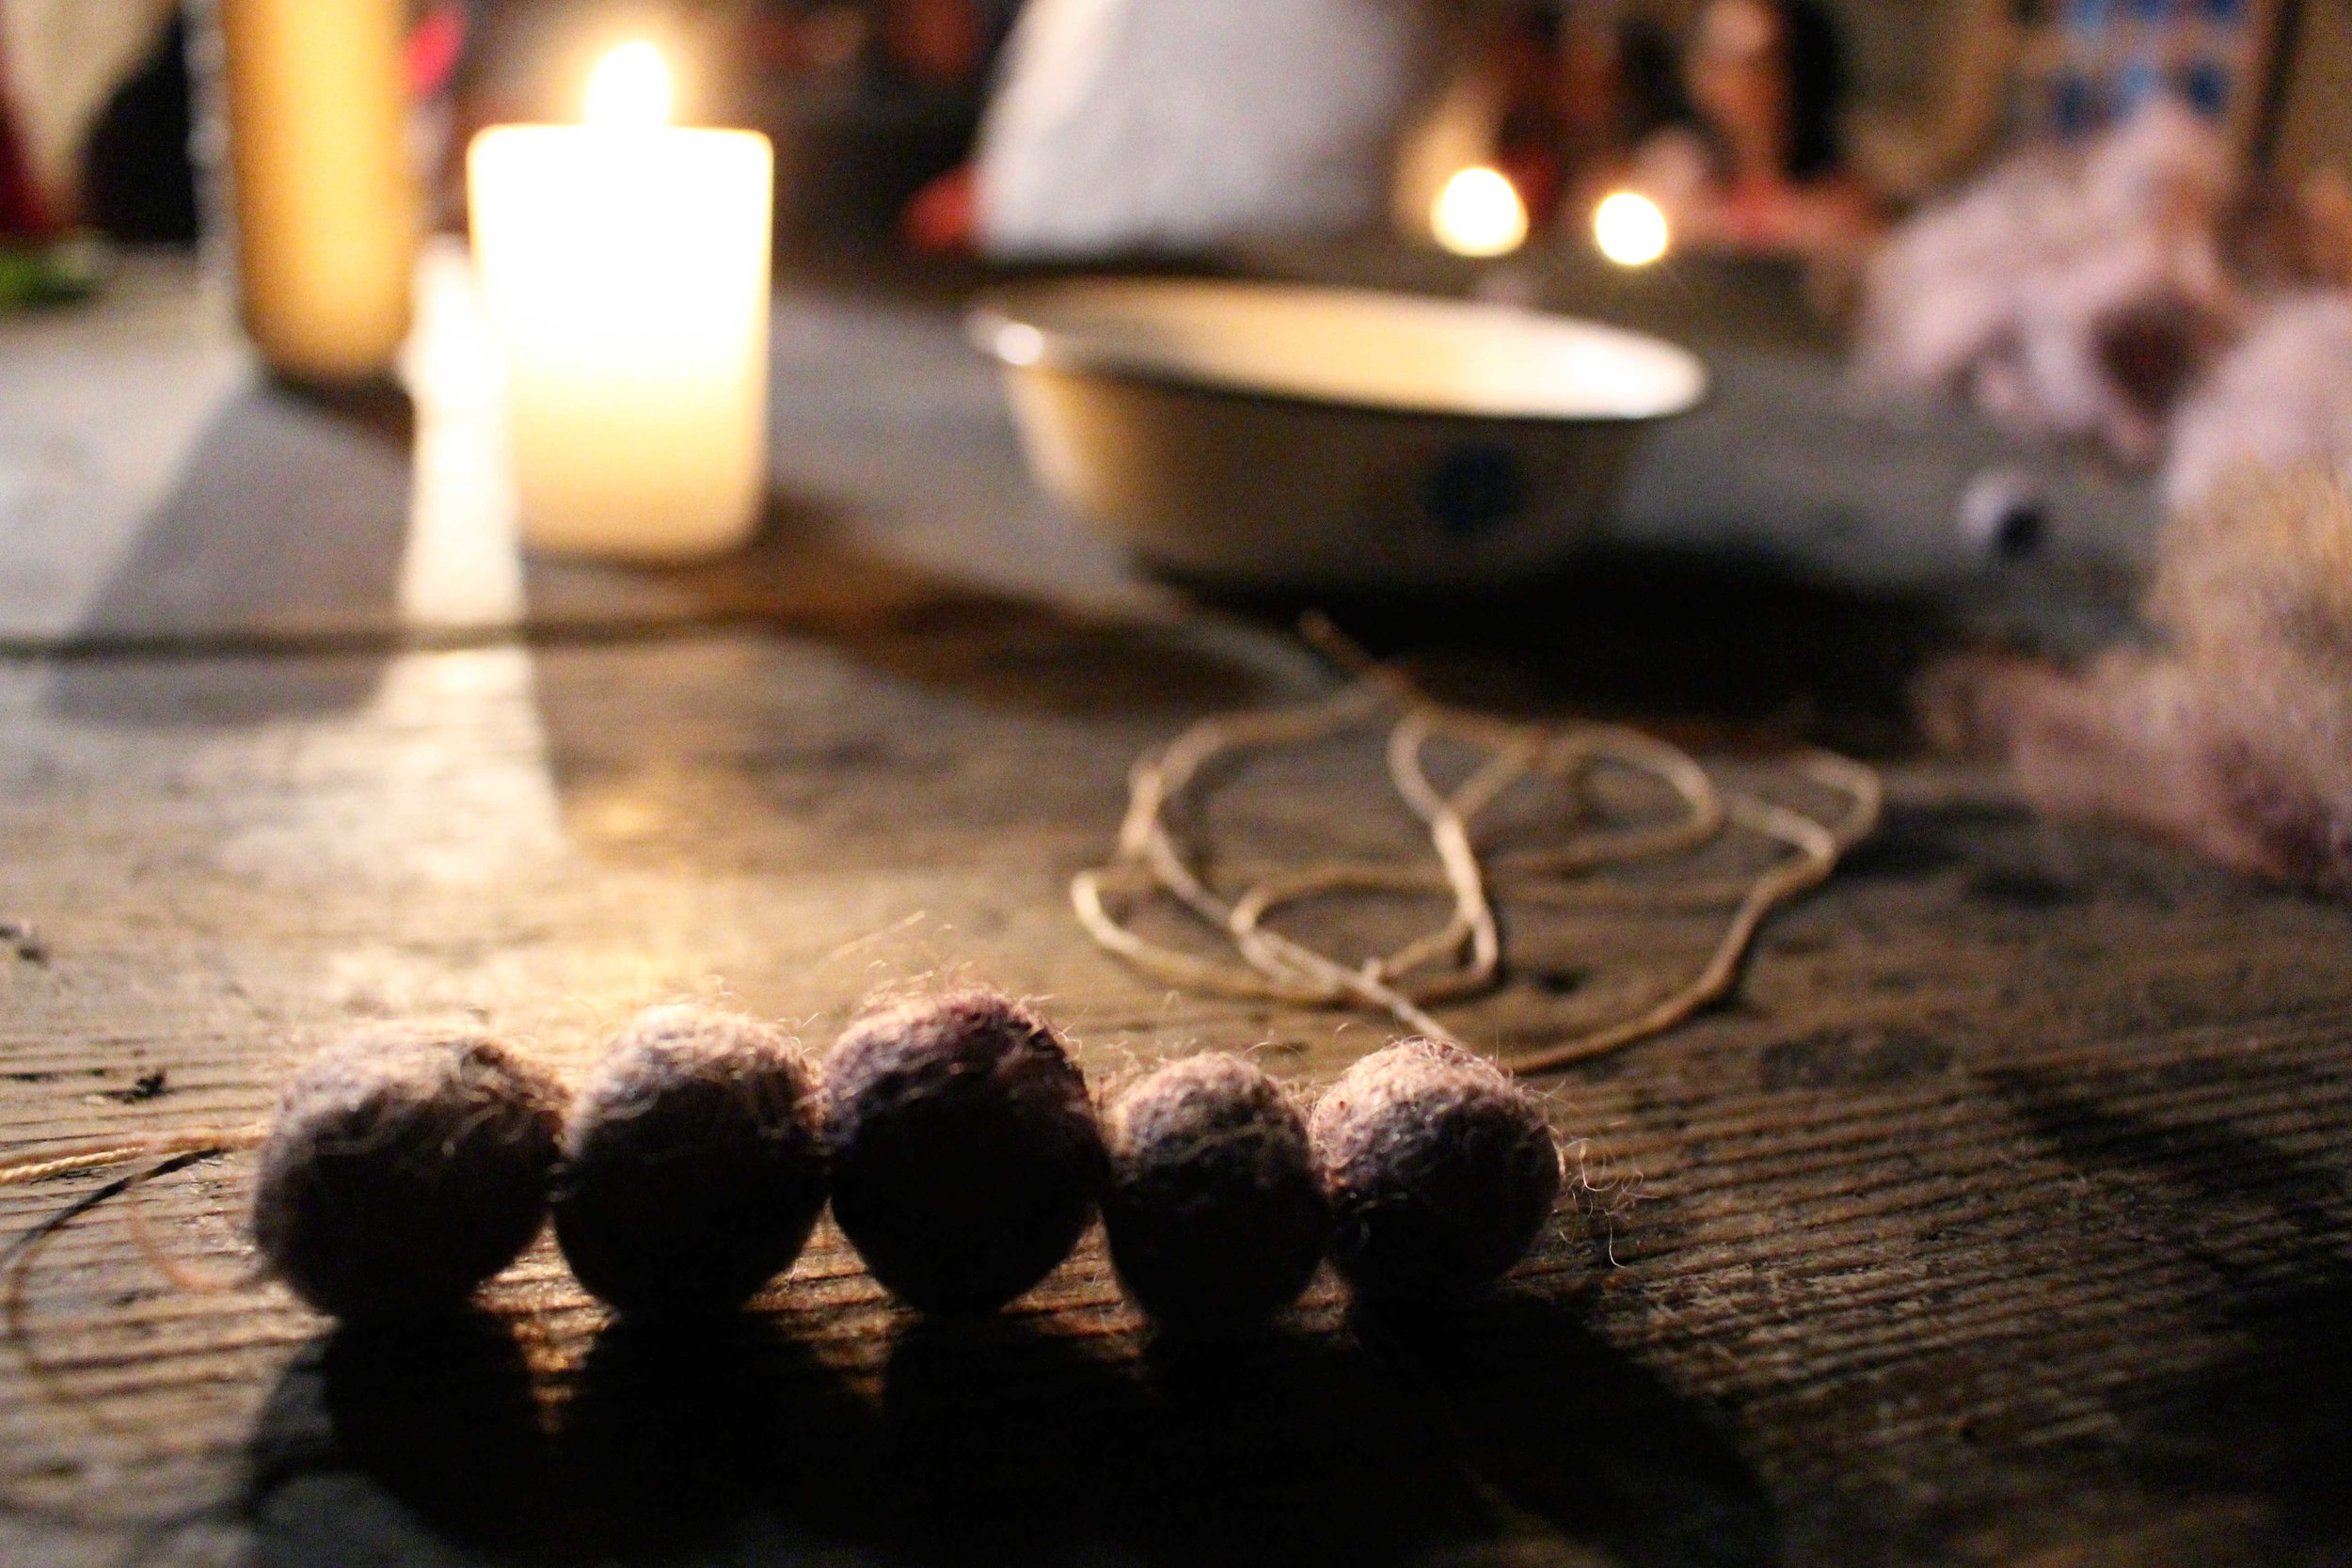 Once the wool dried, the balls changed to a beautiful purpley-grey colour.